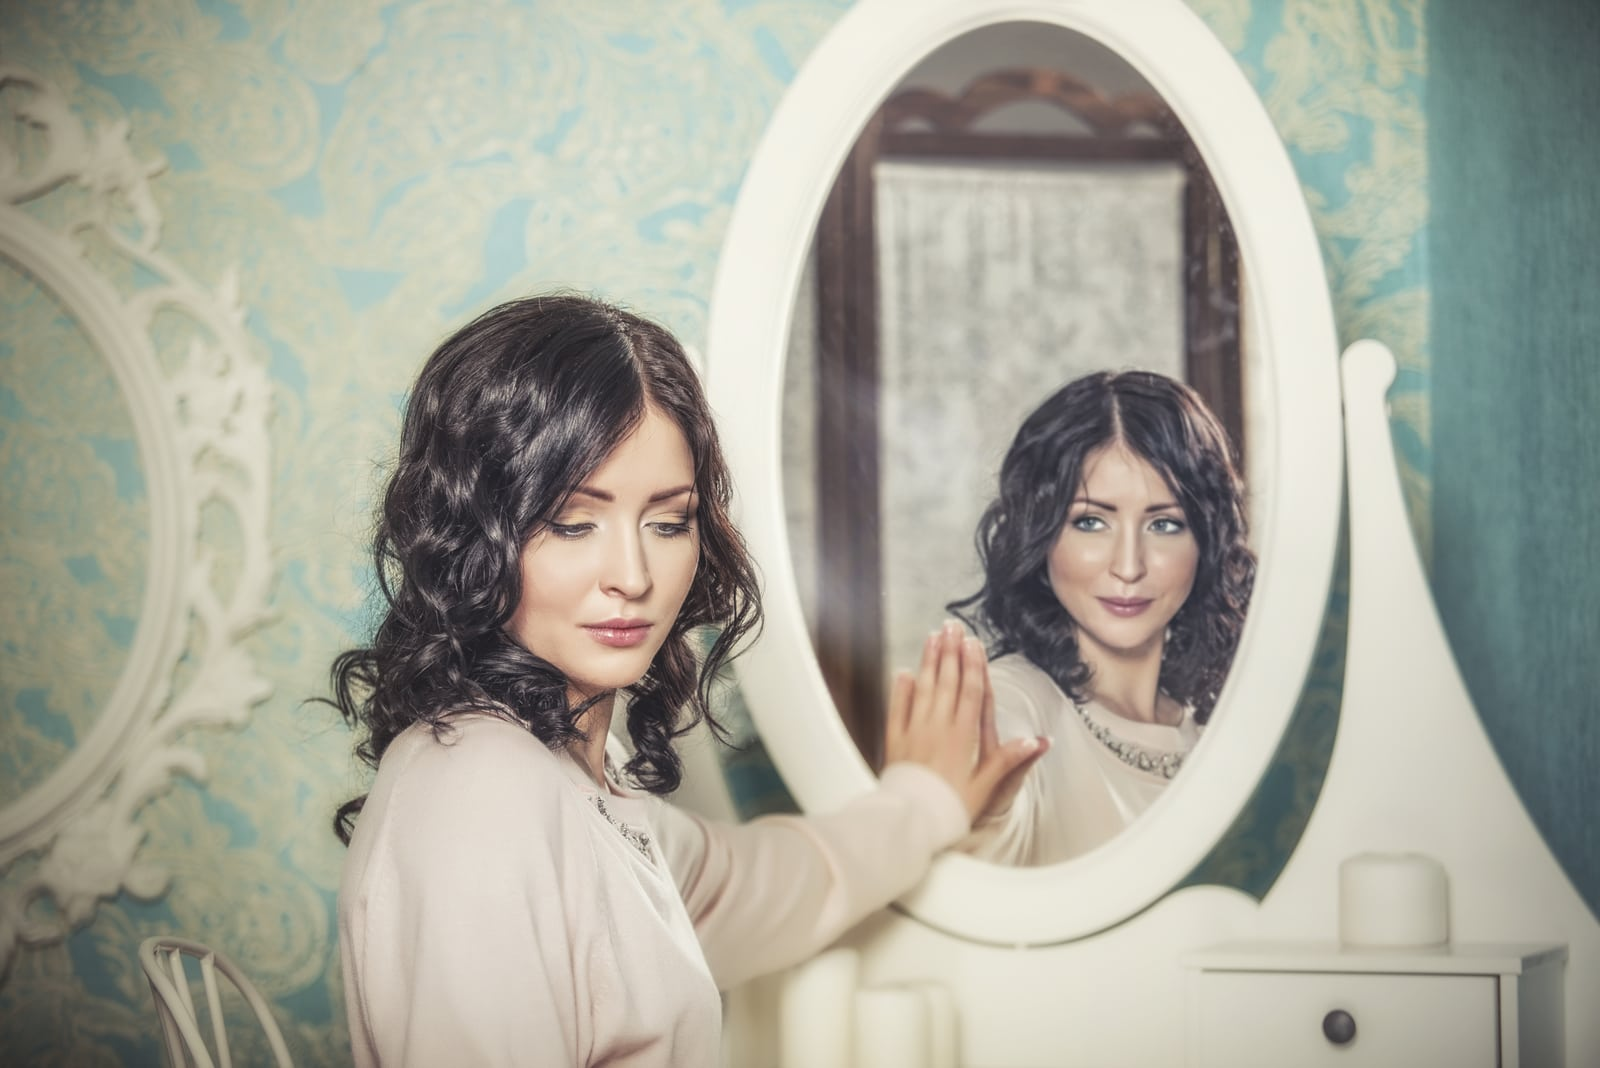 a woman standing next to a mirror